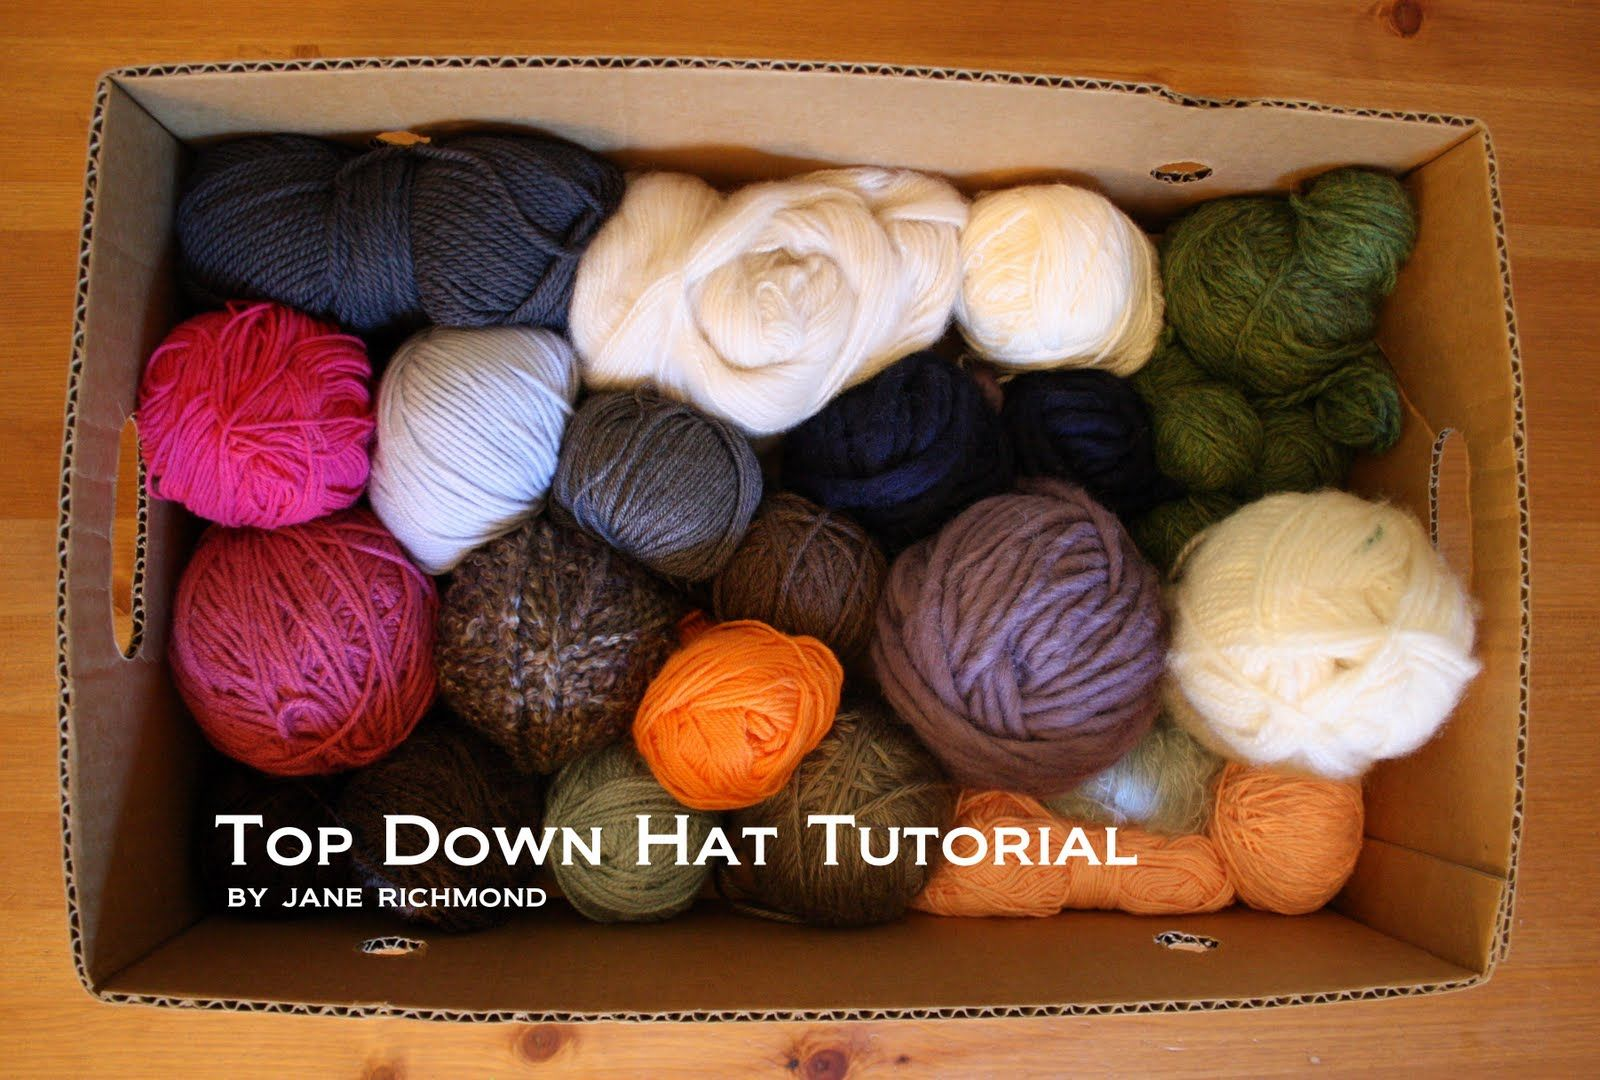 Top Down hat-knitting tutorial! Check the website!